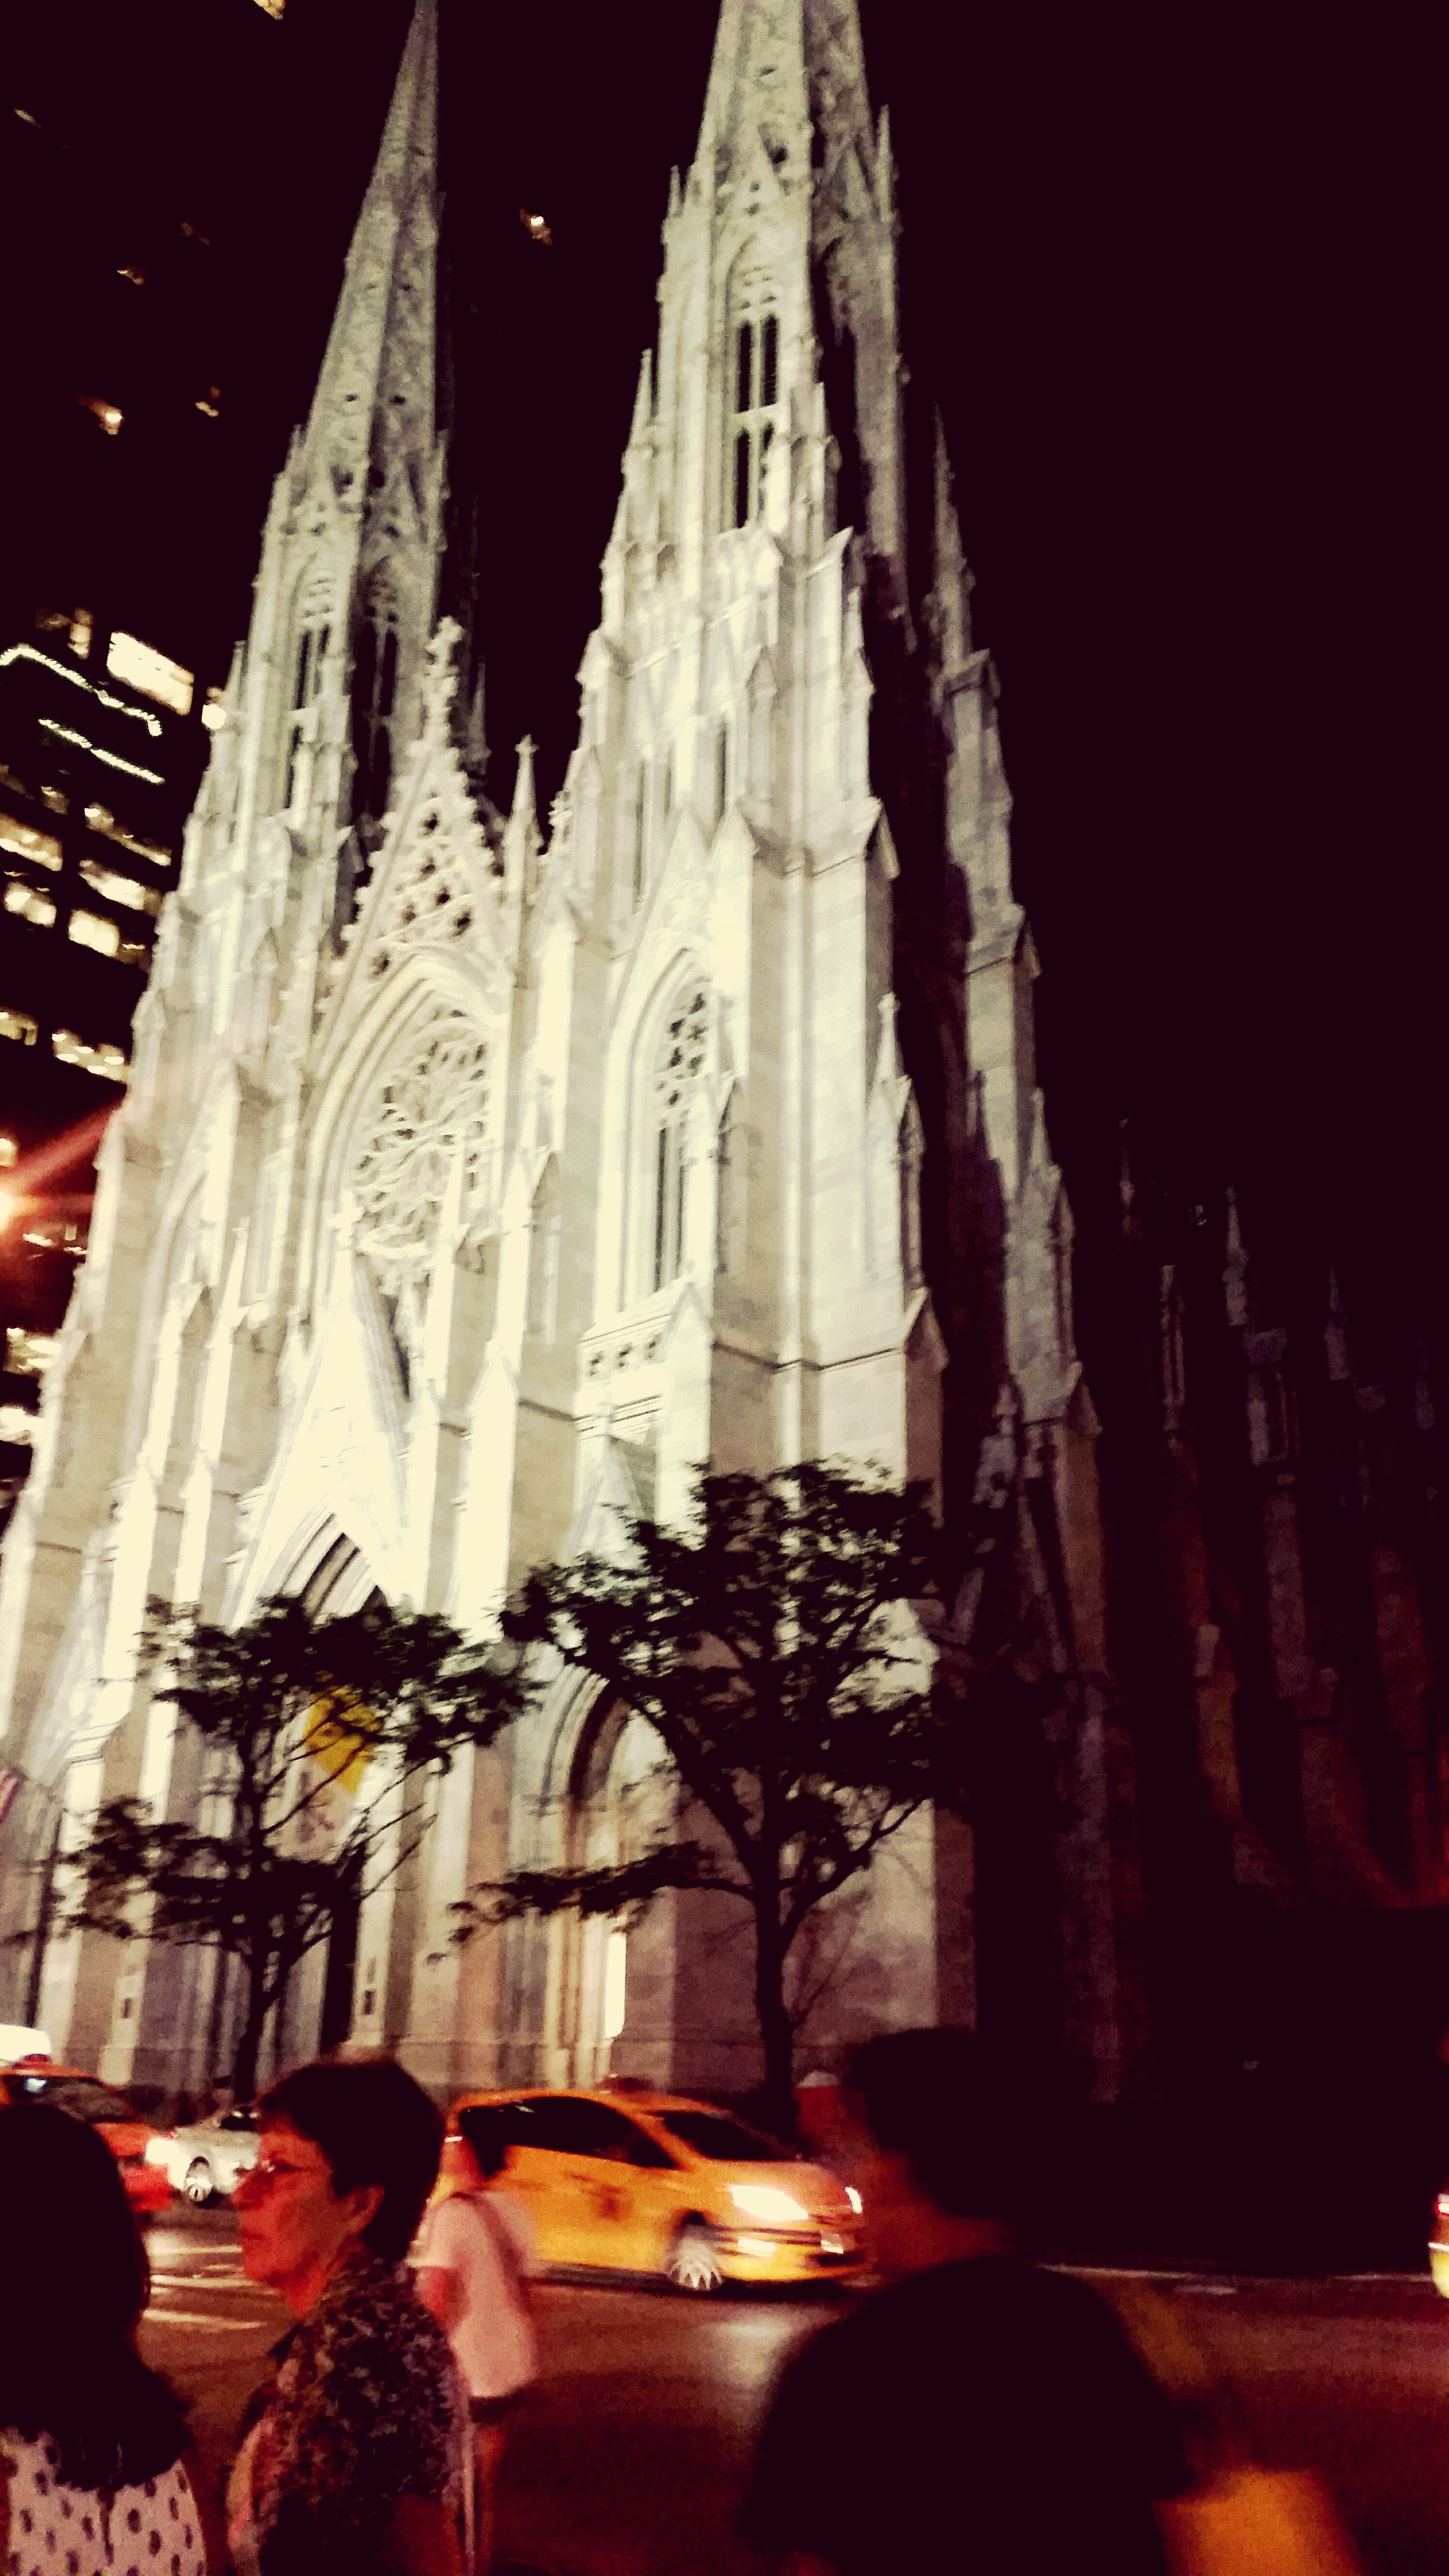 architecture, building exterior, built structure, night, religion, place of worship, illuminated, spirituality, church, city, travel destinations, low angle view, cathedral, street, famous place, incidental people, facade, history